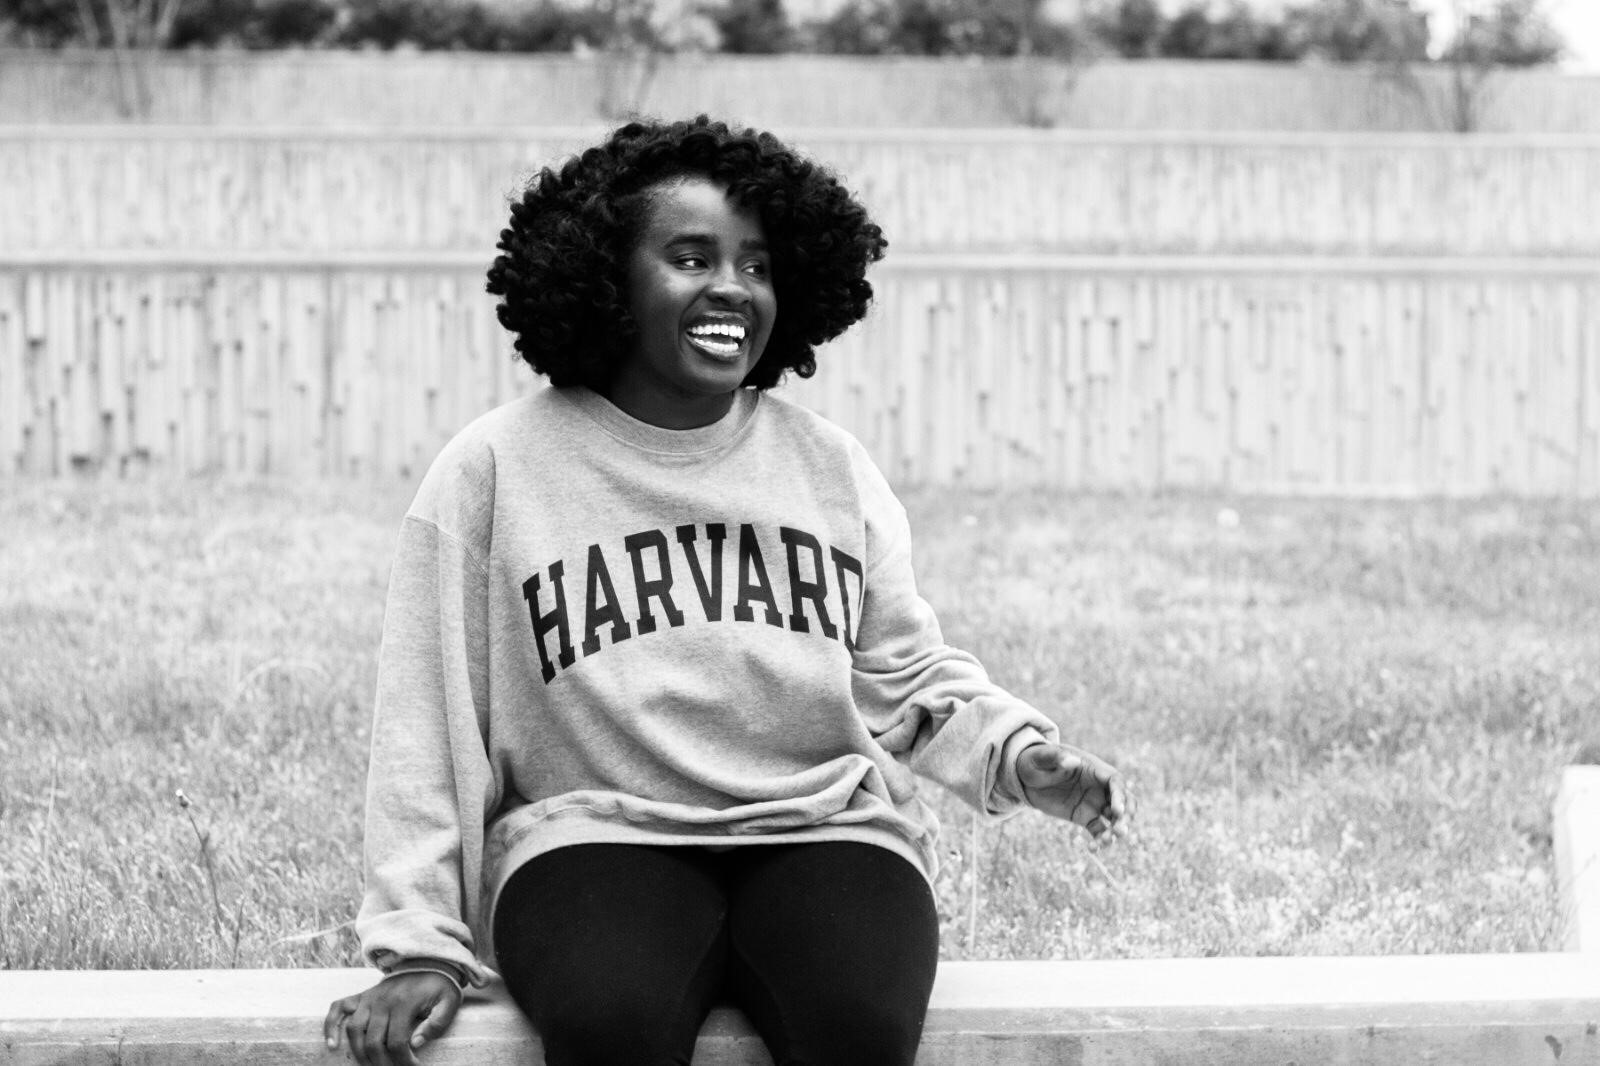 From Kumasi to Havard University: The story of 22-year-old Anna Opoku-Agyeman, CEO of the Sadie Collective.